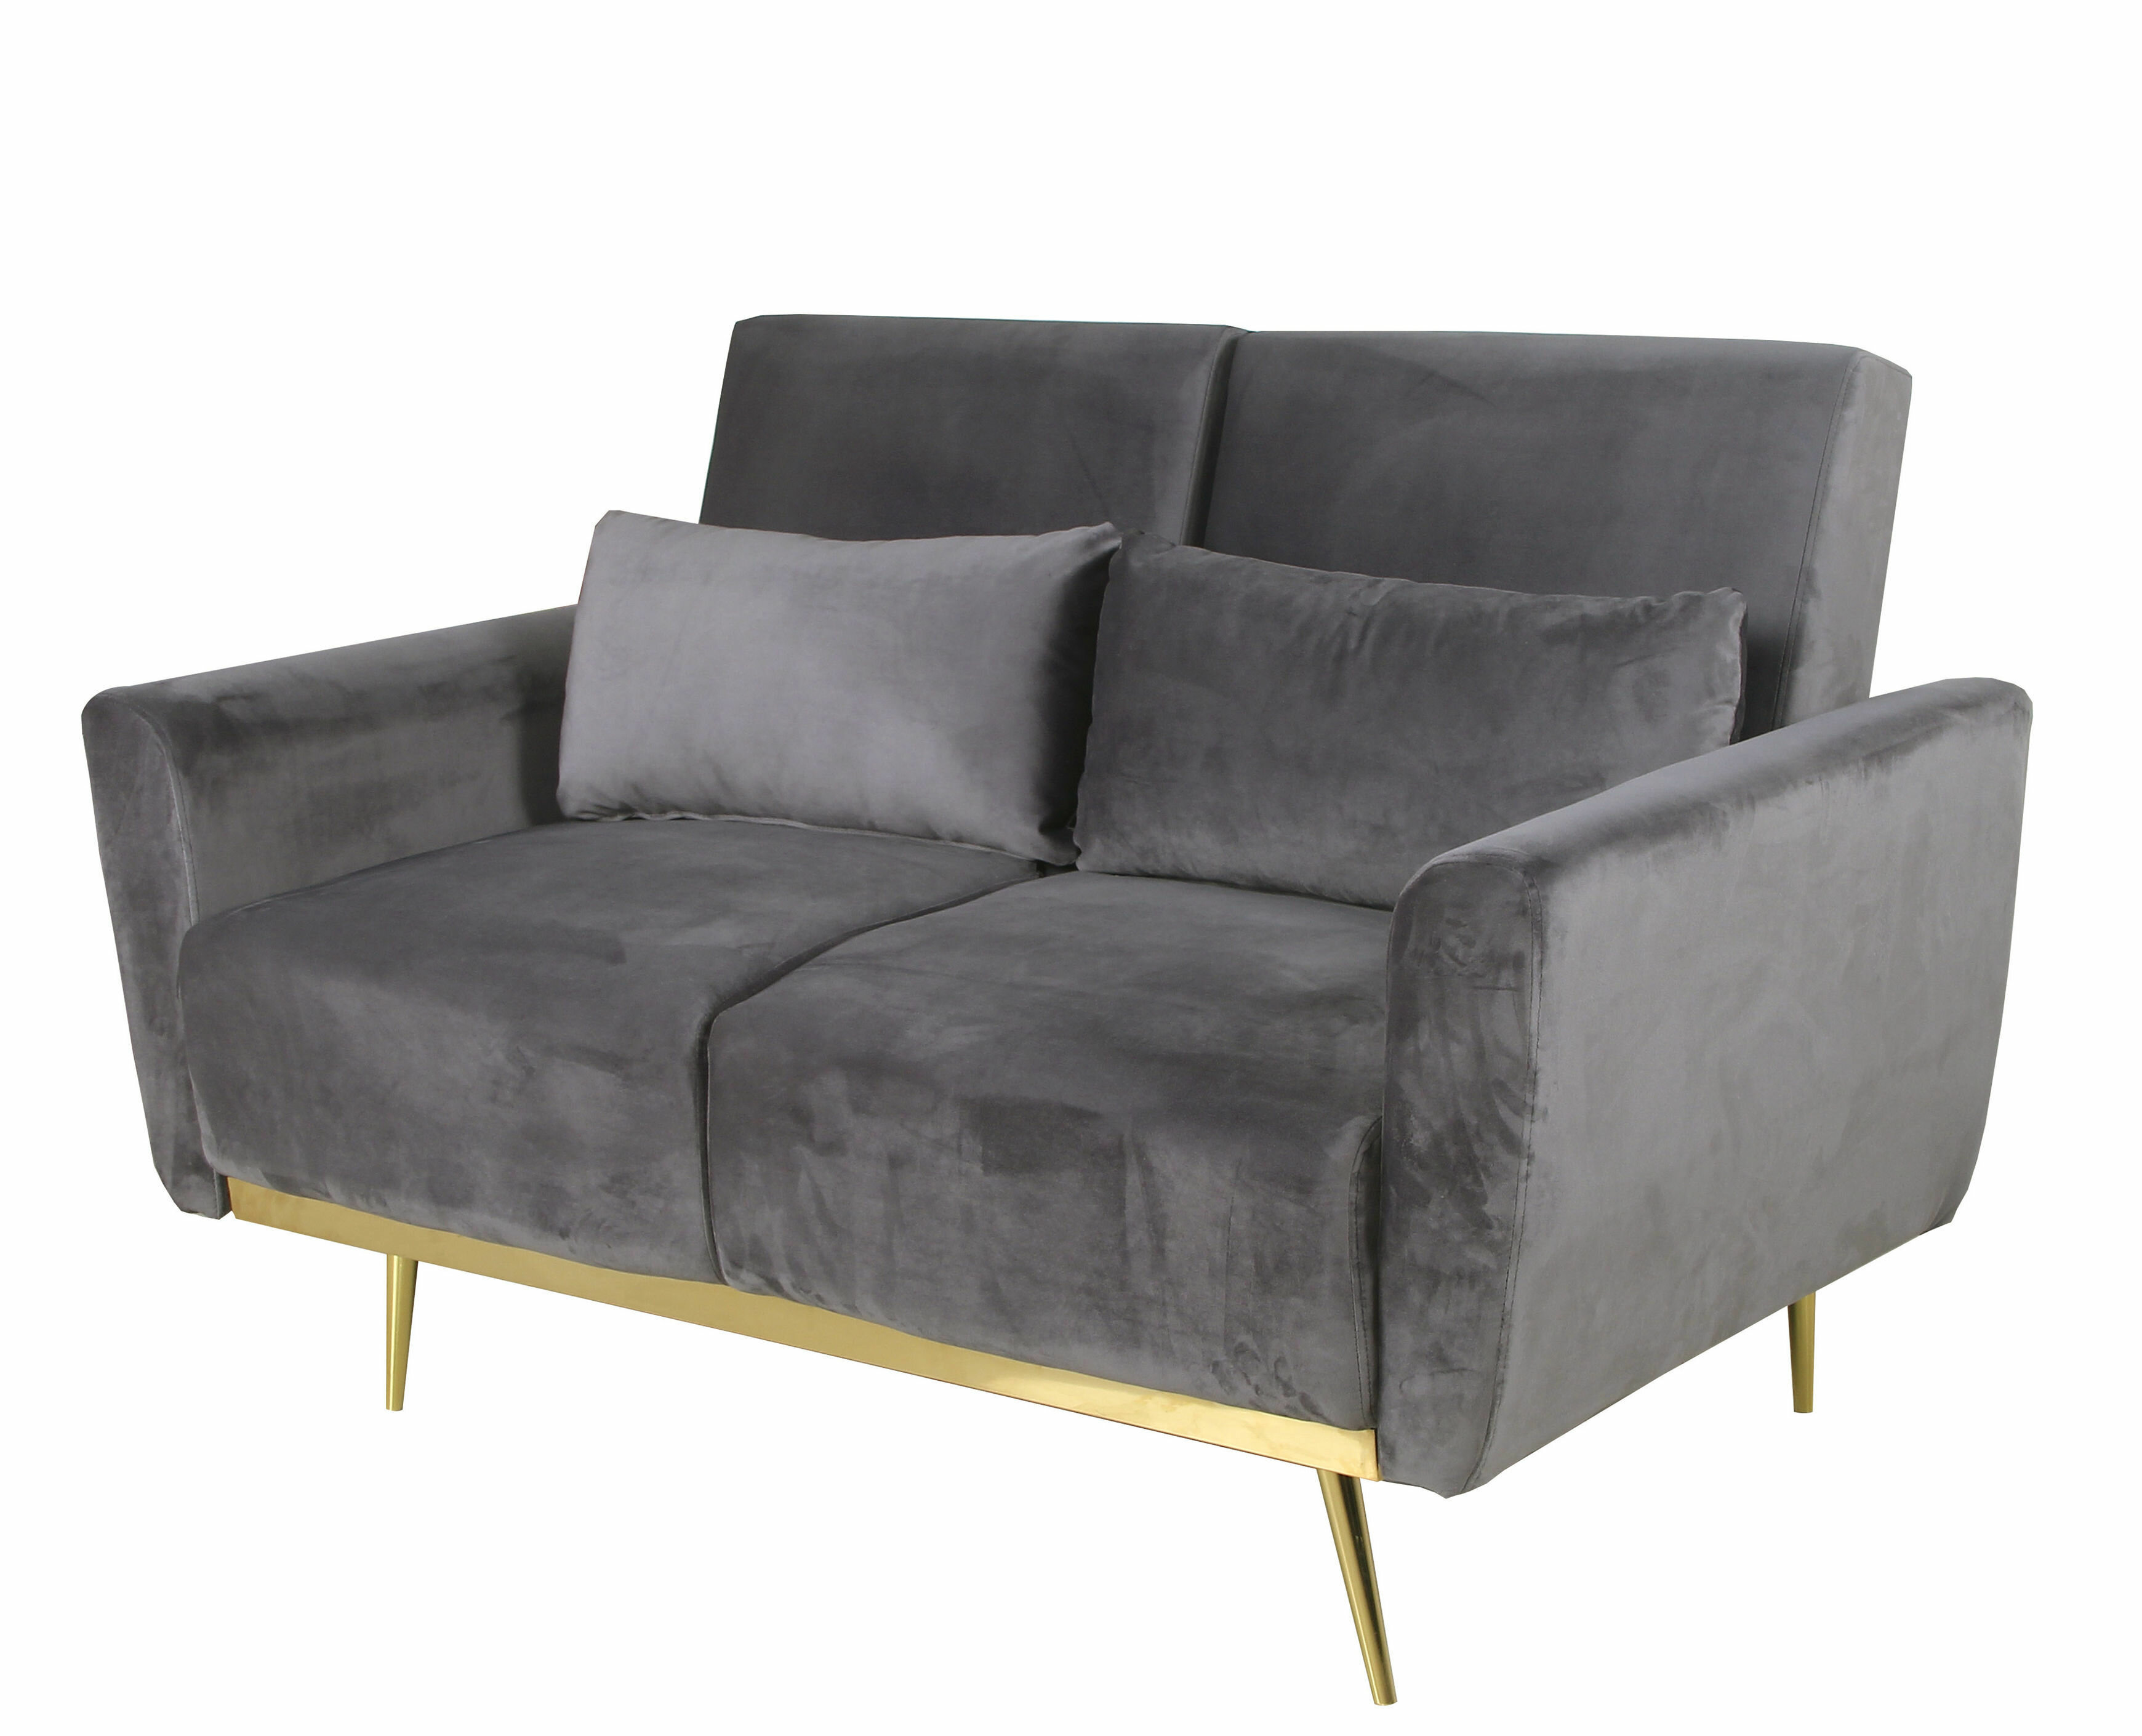 Orben 2 Seater Sofa Bed